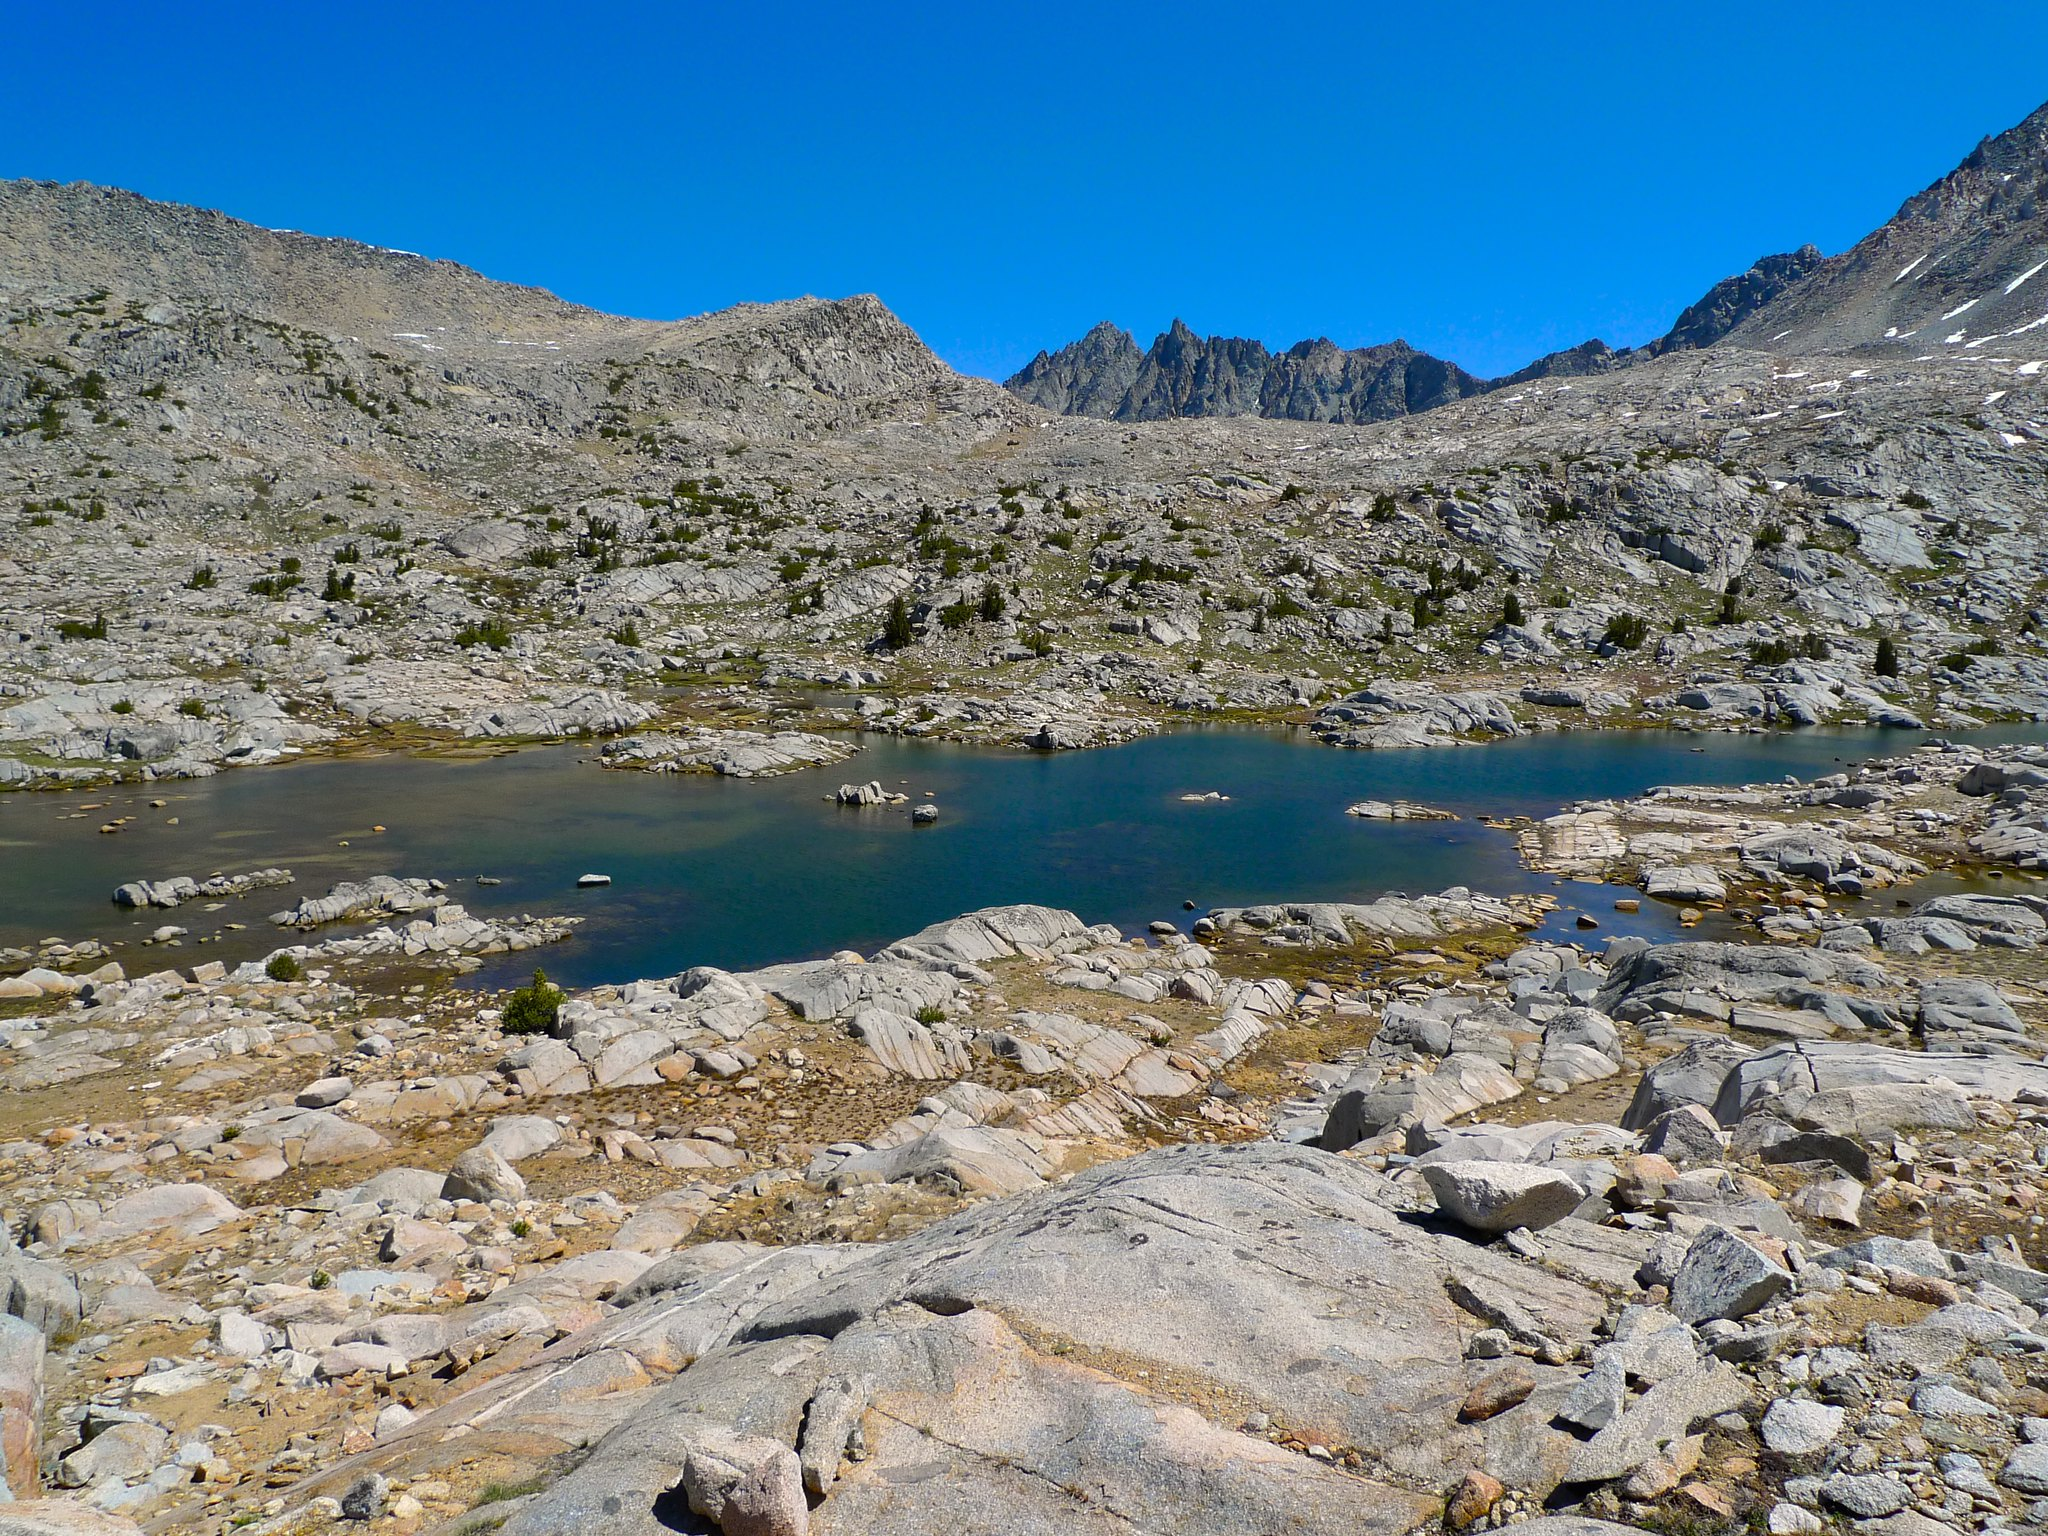 The Inconsolable Range peeks up above Bishop Pass as I make my way eastward off trail to explore upper Dusy Basin